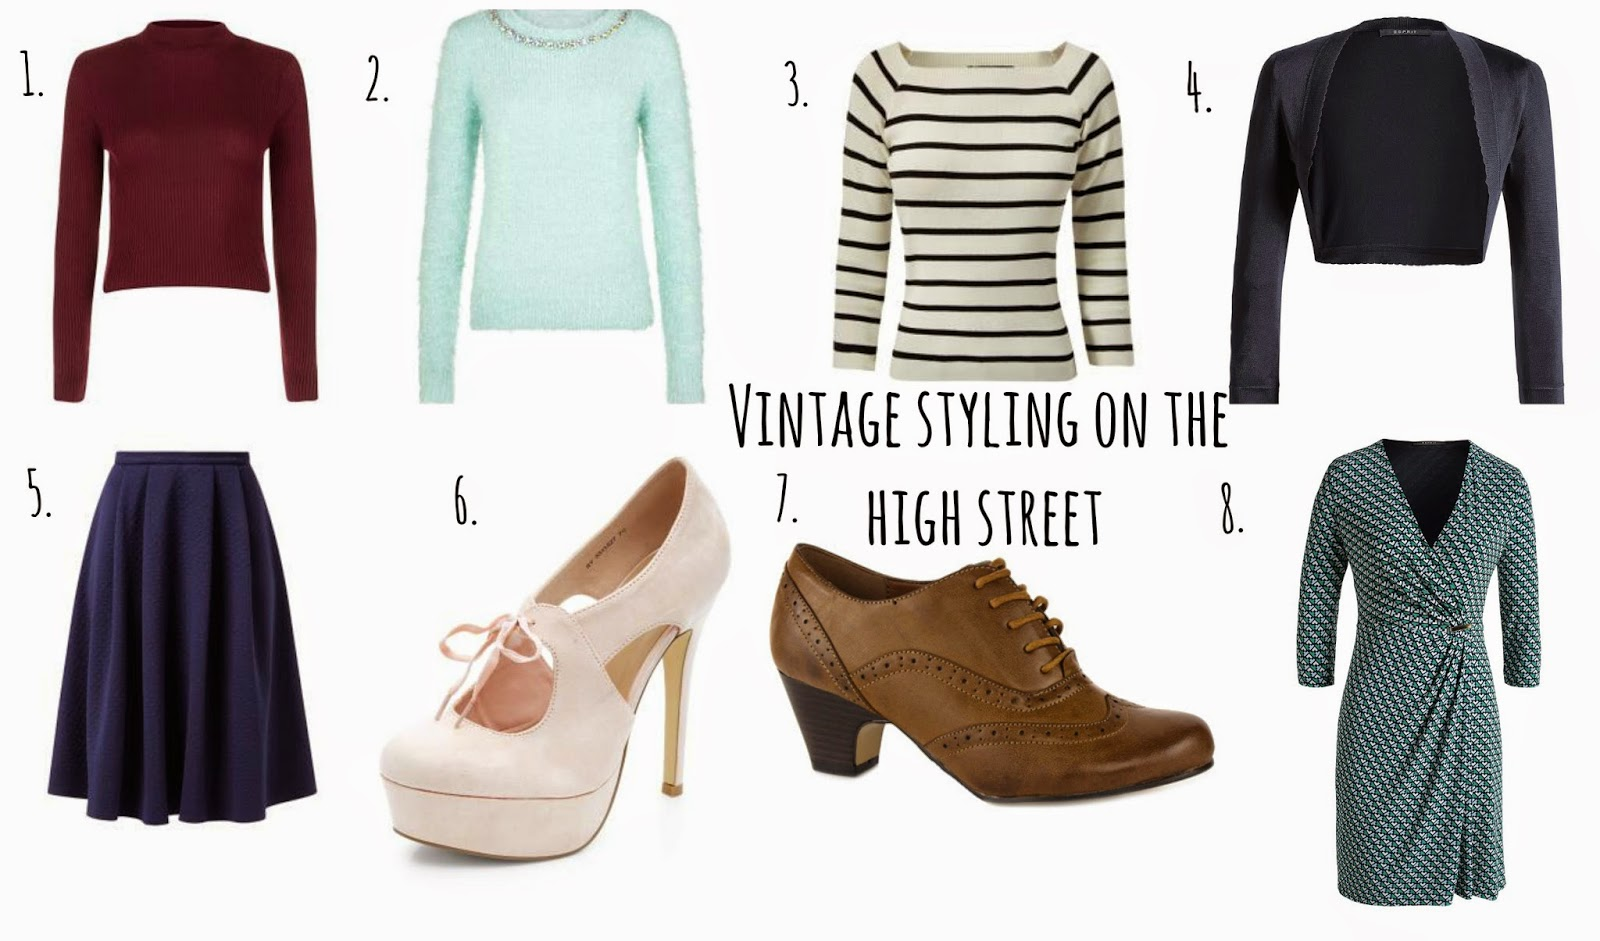 Vintage styling on the high street